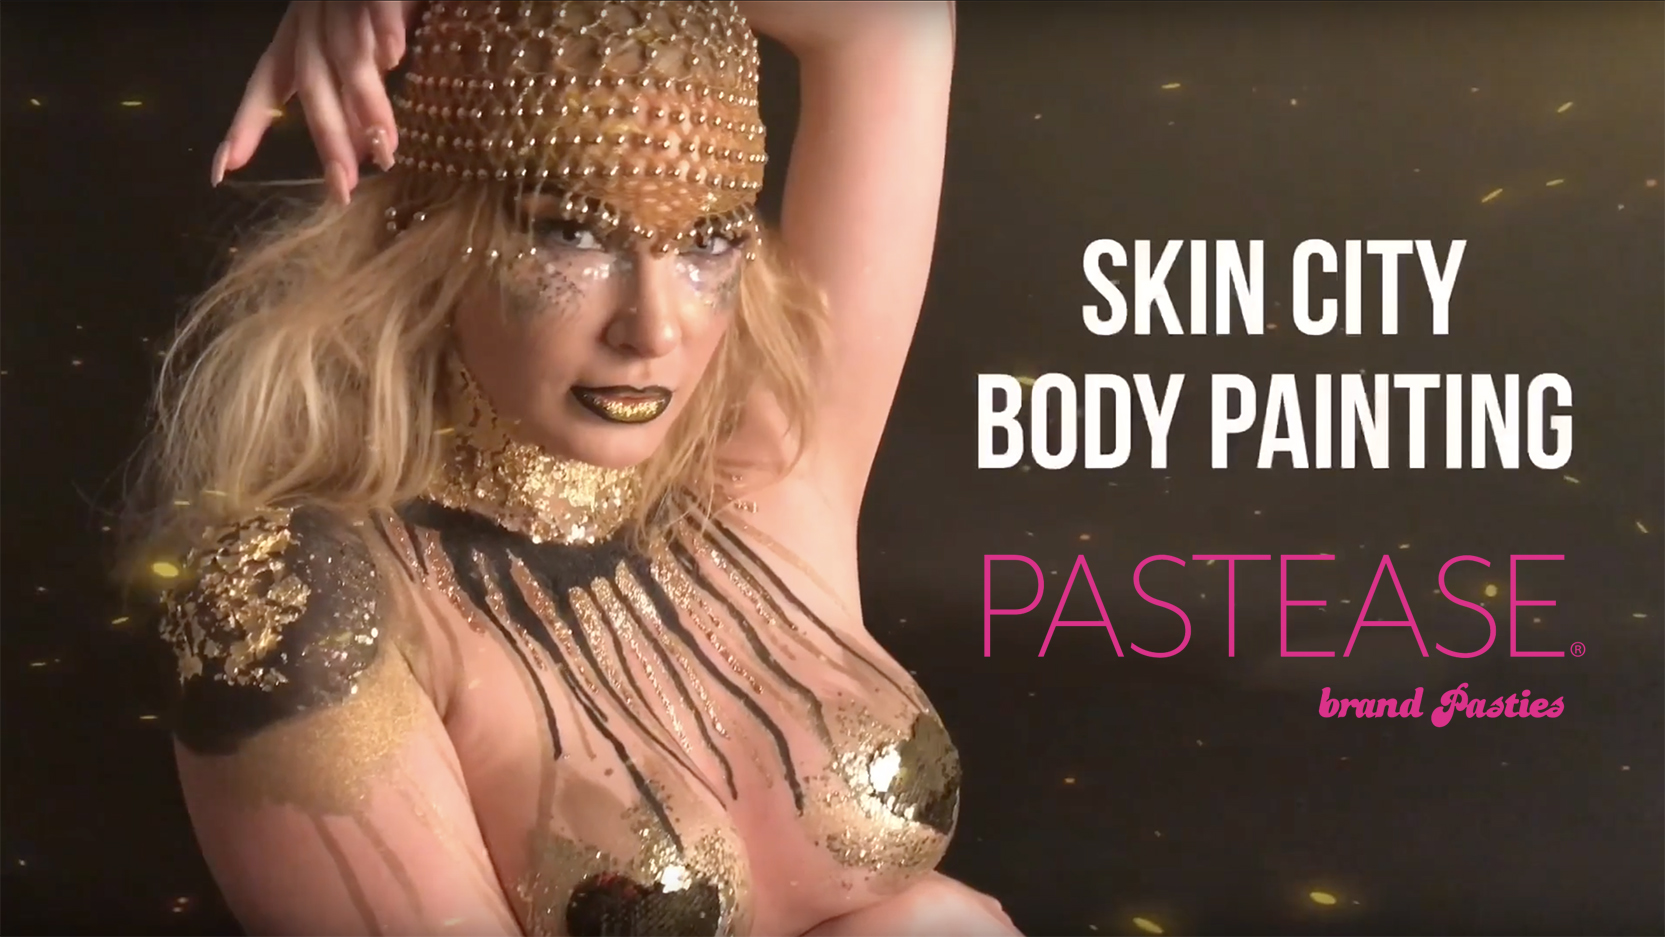 Skin City Pastease